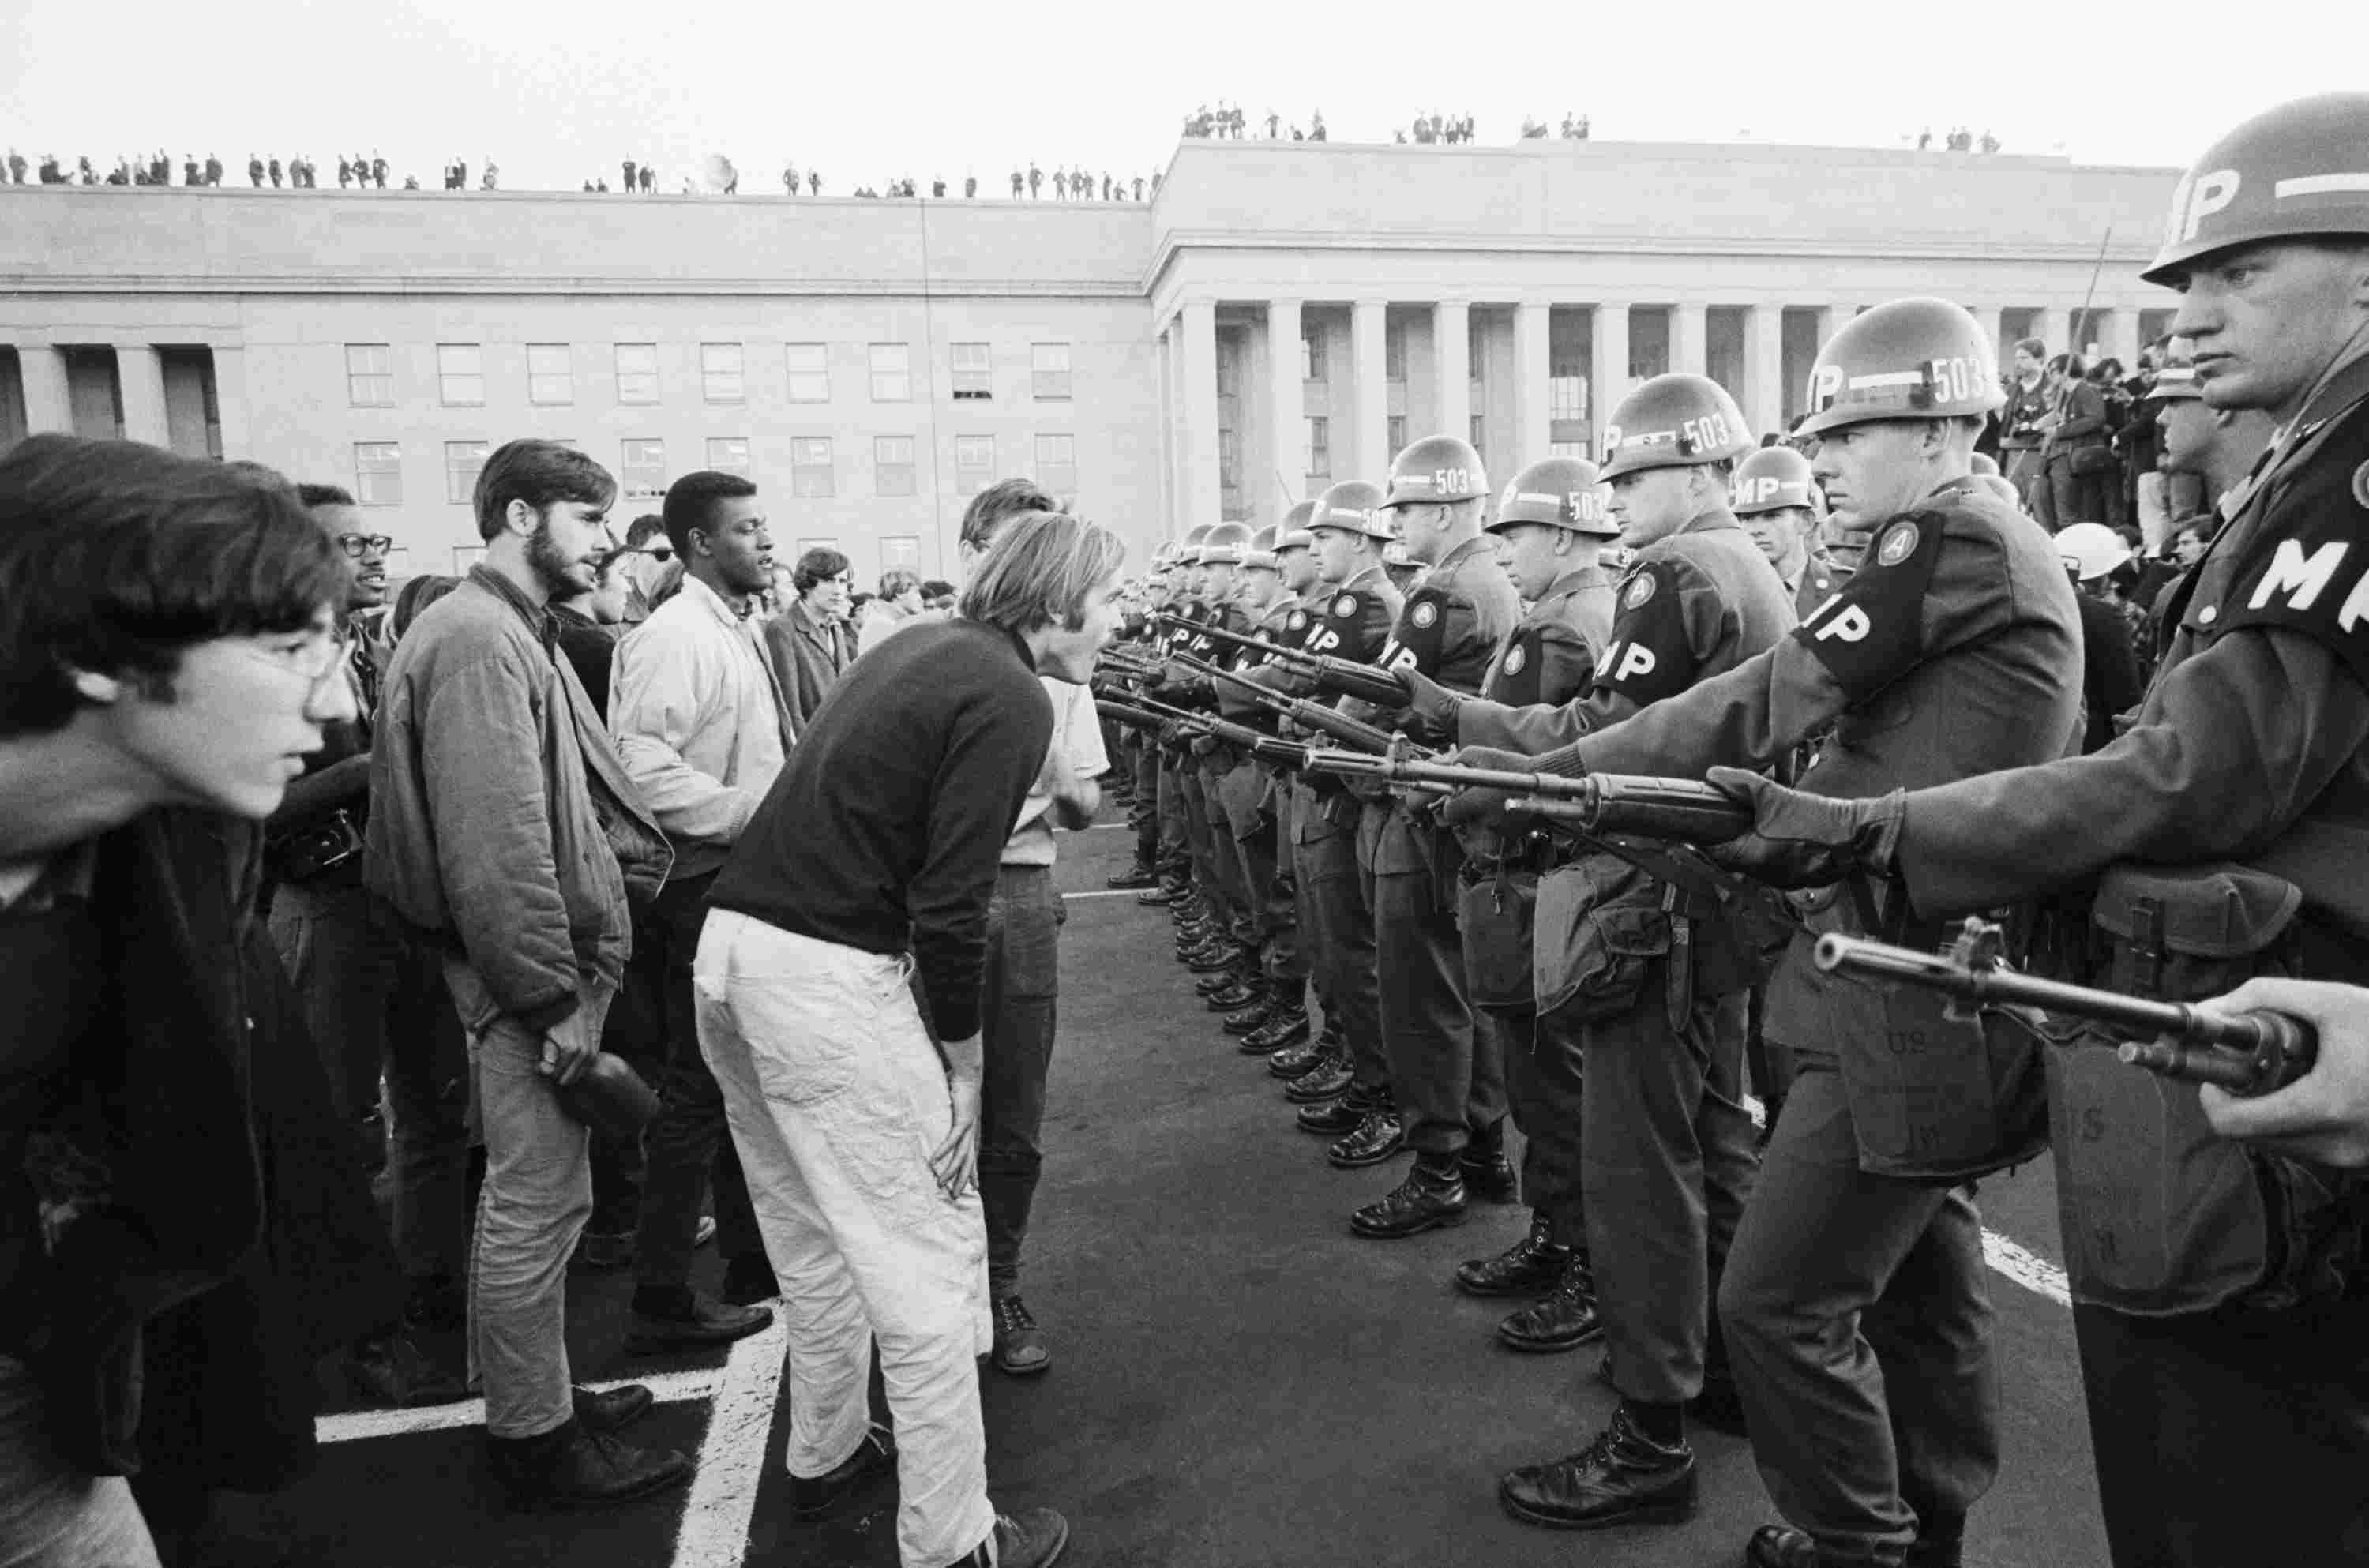 Photograph of protesters at the Pentagon in 1967